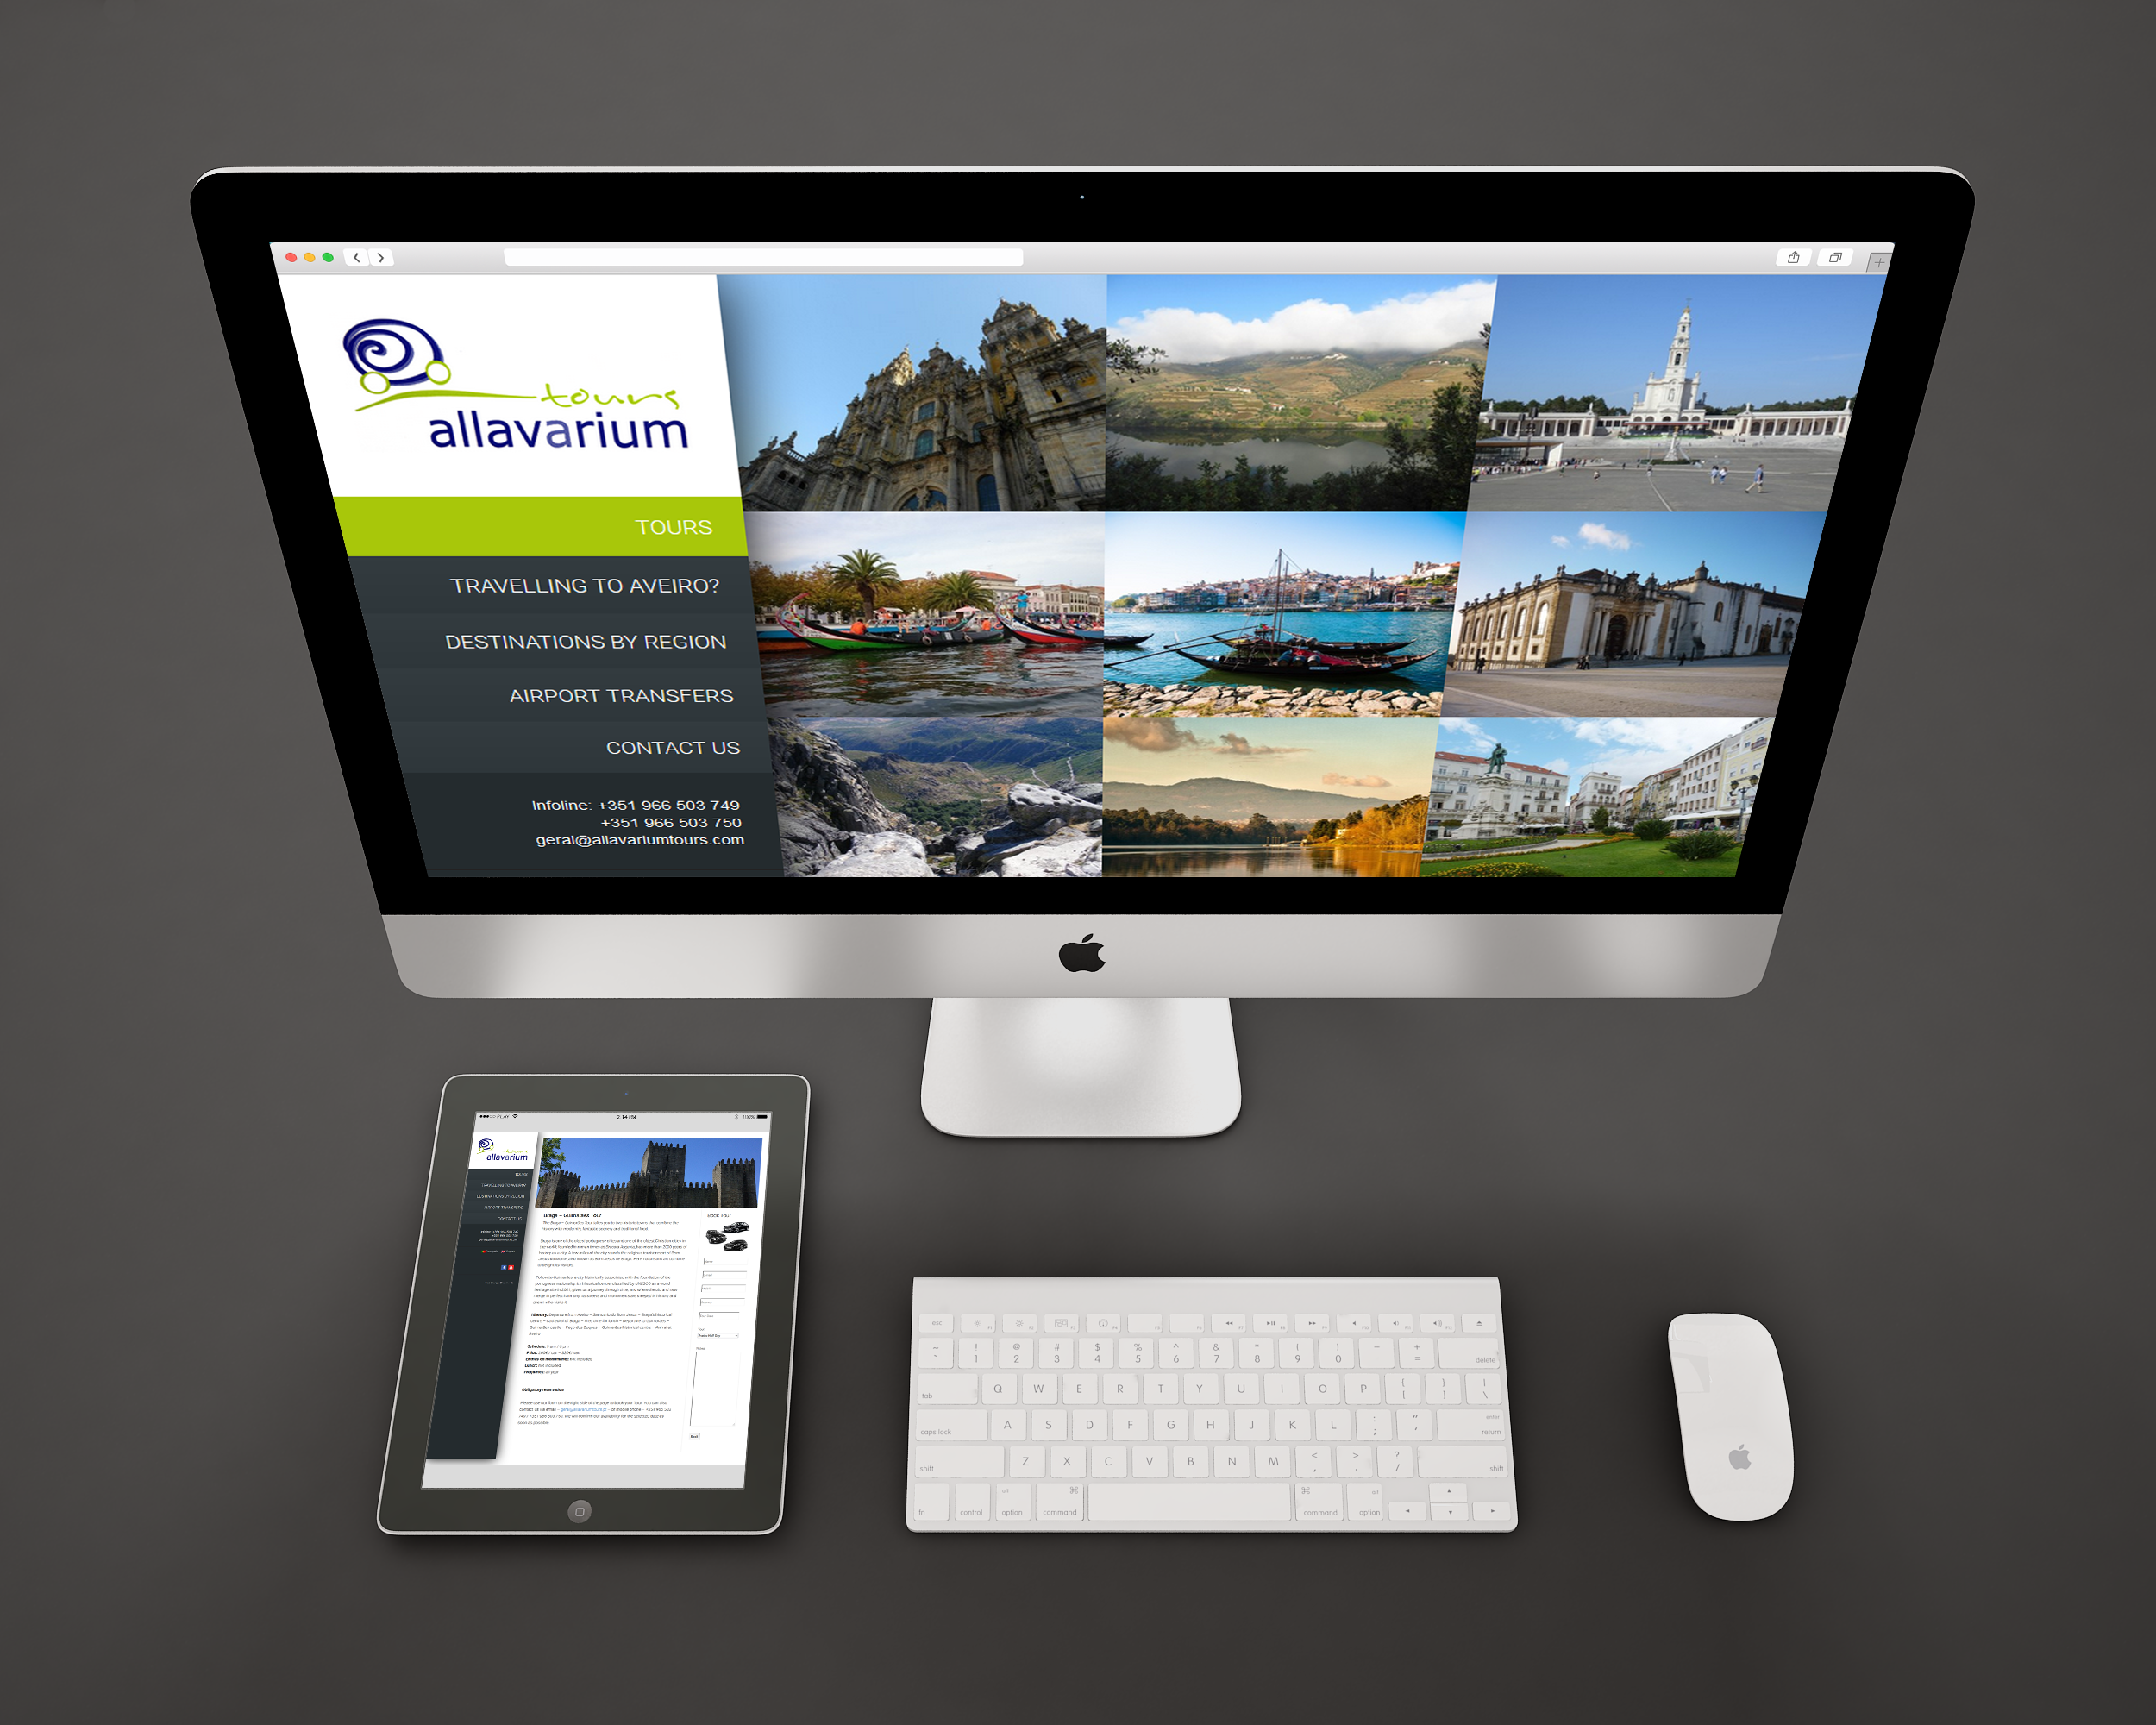 allavarium tours allavarium tours Allavarium Tours | Website allavarium tours